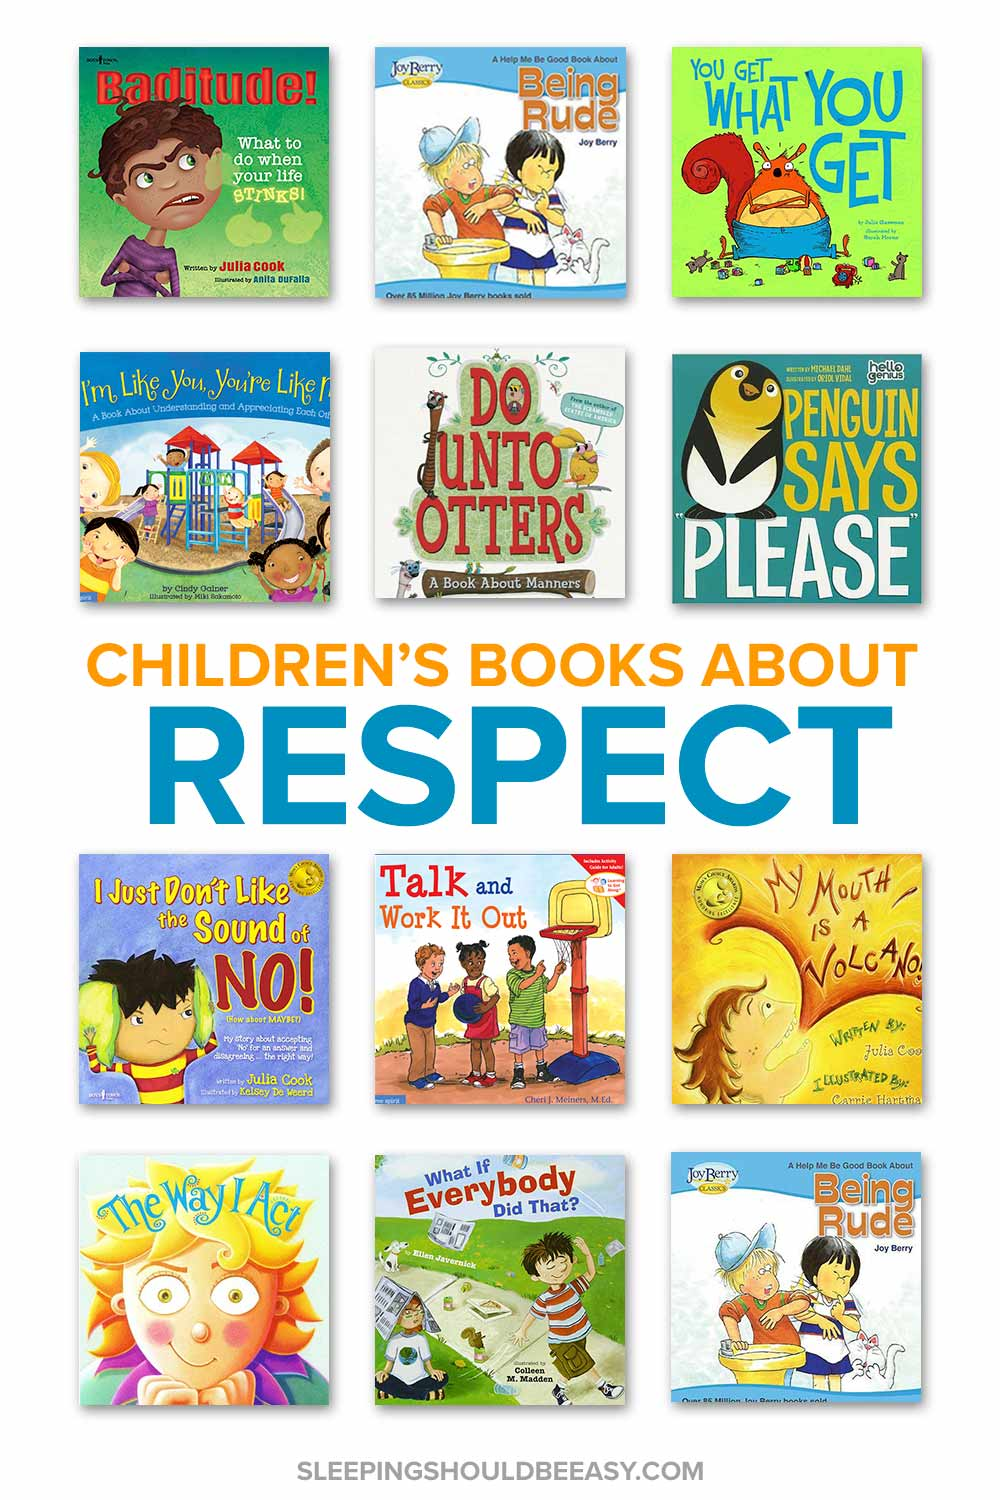 A collection of children's books about respect